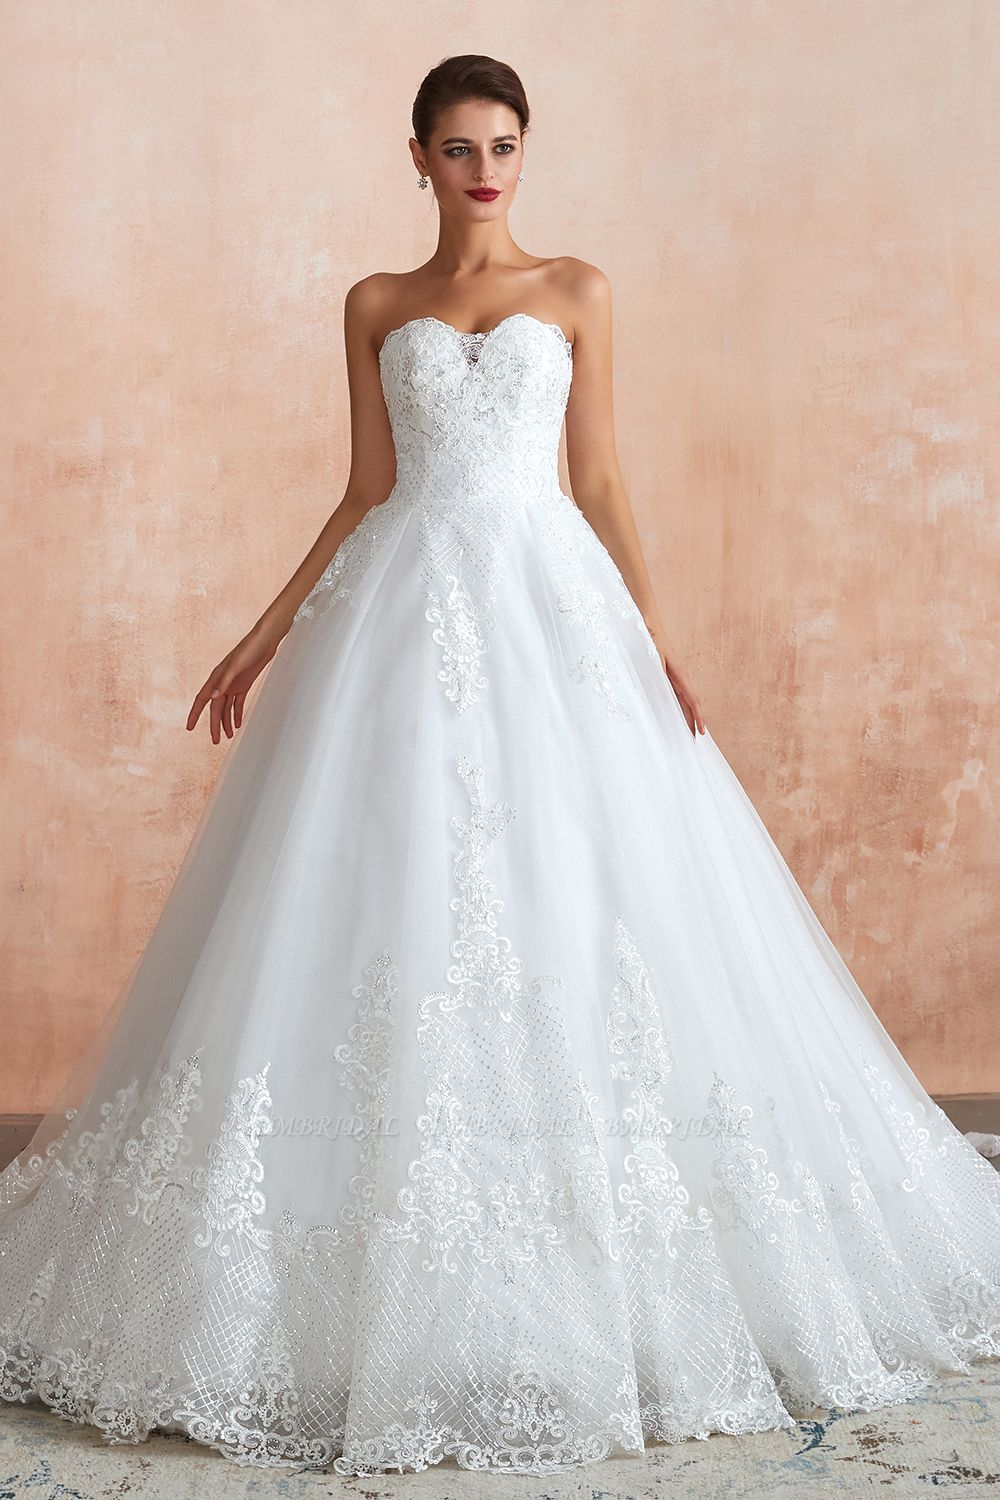 BMbridal Stylish Strapless White Lace Affordable Wedding Dress Online with Low Back